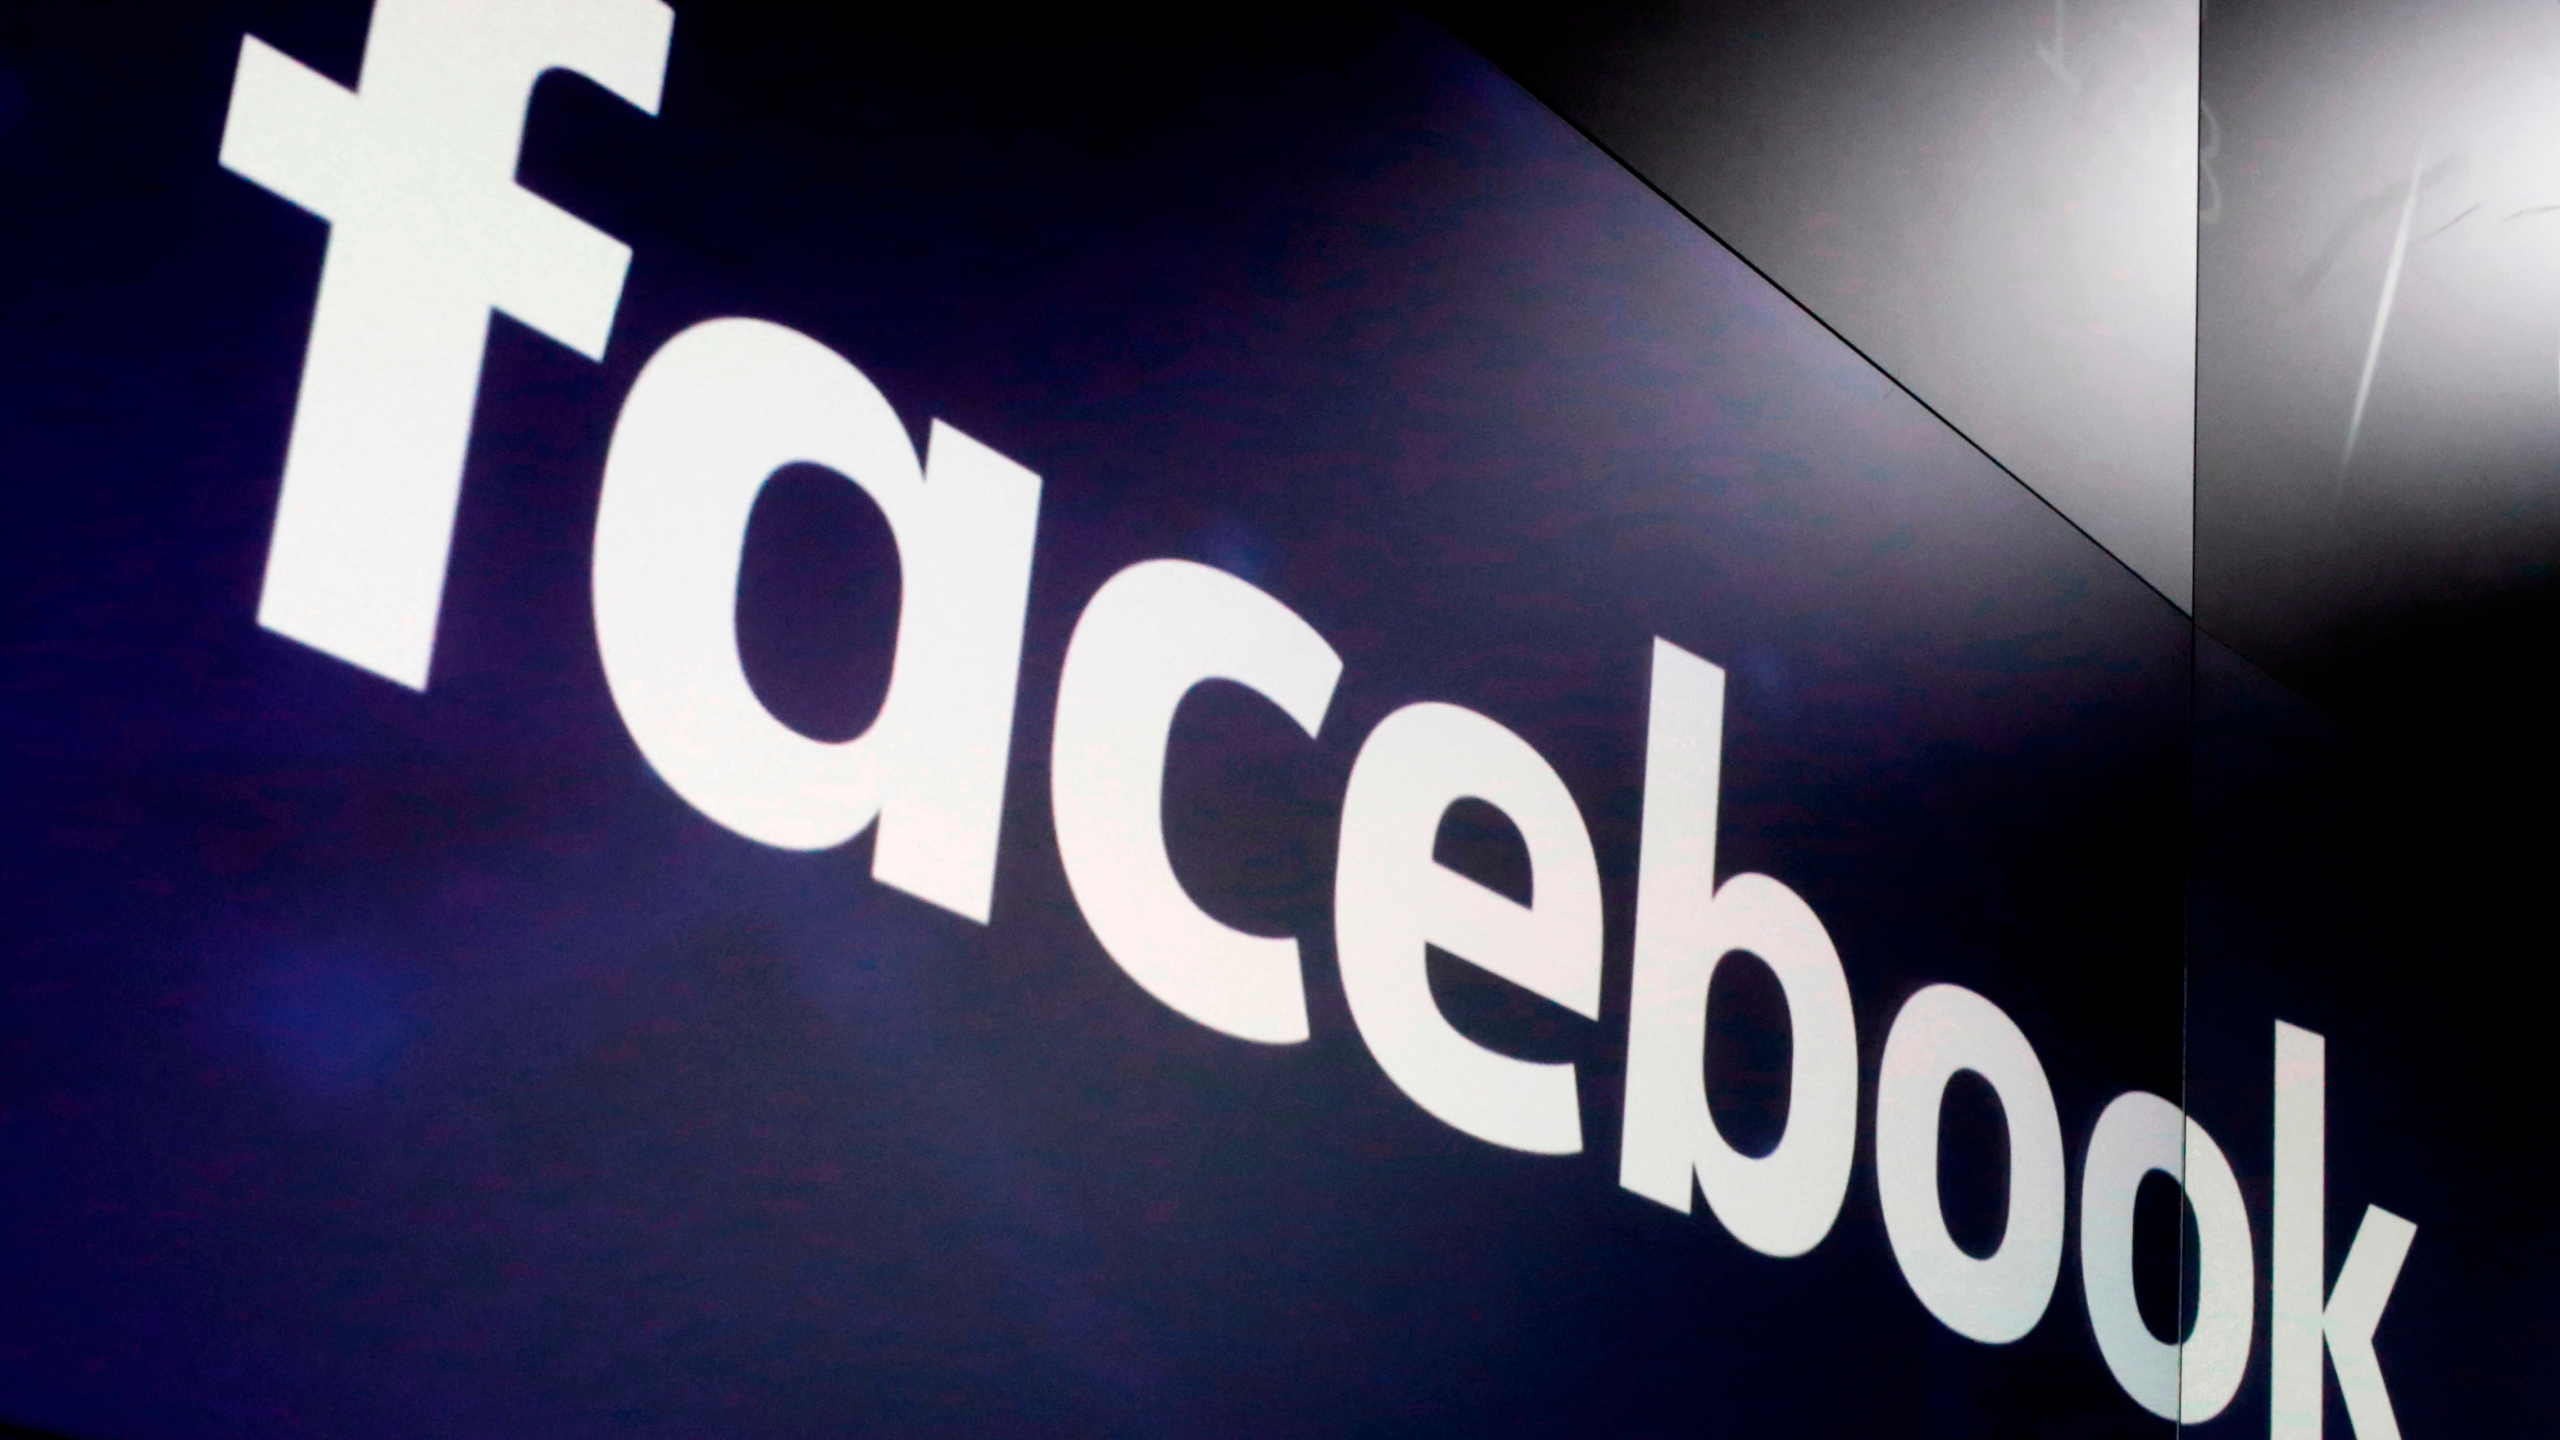 In this March 29, 2018, file photo, the logo for Facebook appears on screens at the Nasdaq MarketSite in New York's Times Square. Facebook has shut down the personal accounts of a pair of New York University researchers and shuttered their investigation into misinformation spread through political ads on the social network. Facebook says the researchers violated its terms of service and were involved in unauthorized data collection from its massive network. The academics, however, say the company is attempting to exert control on research that paints it in a negative light. (AP Photo/Richard Drew, File)